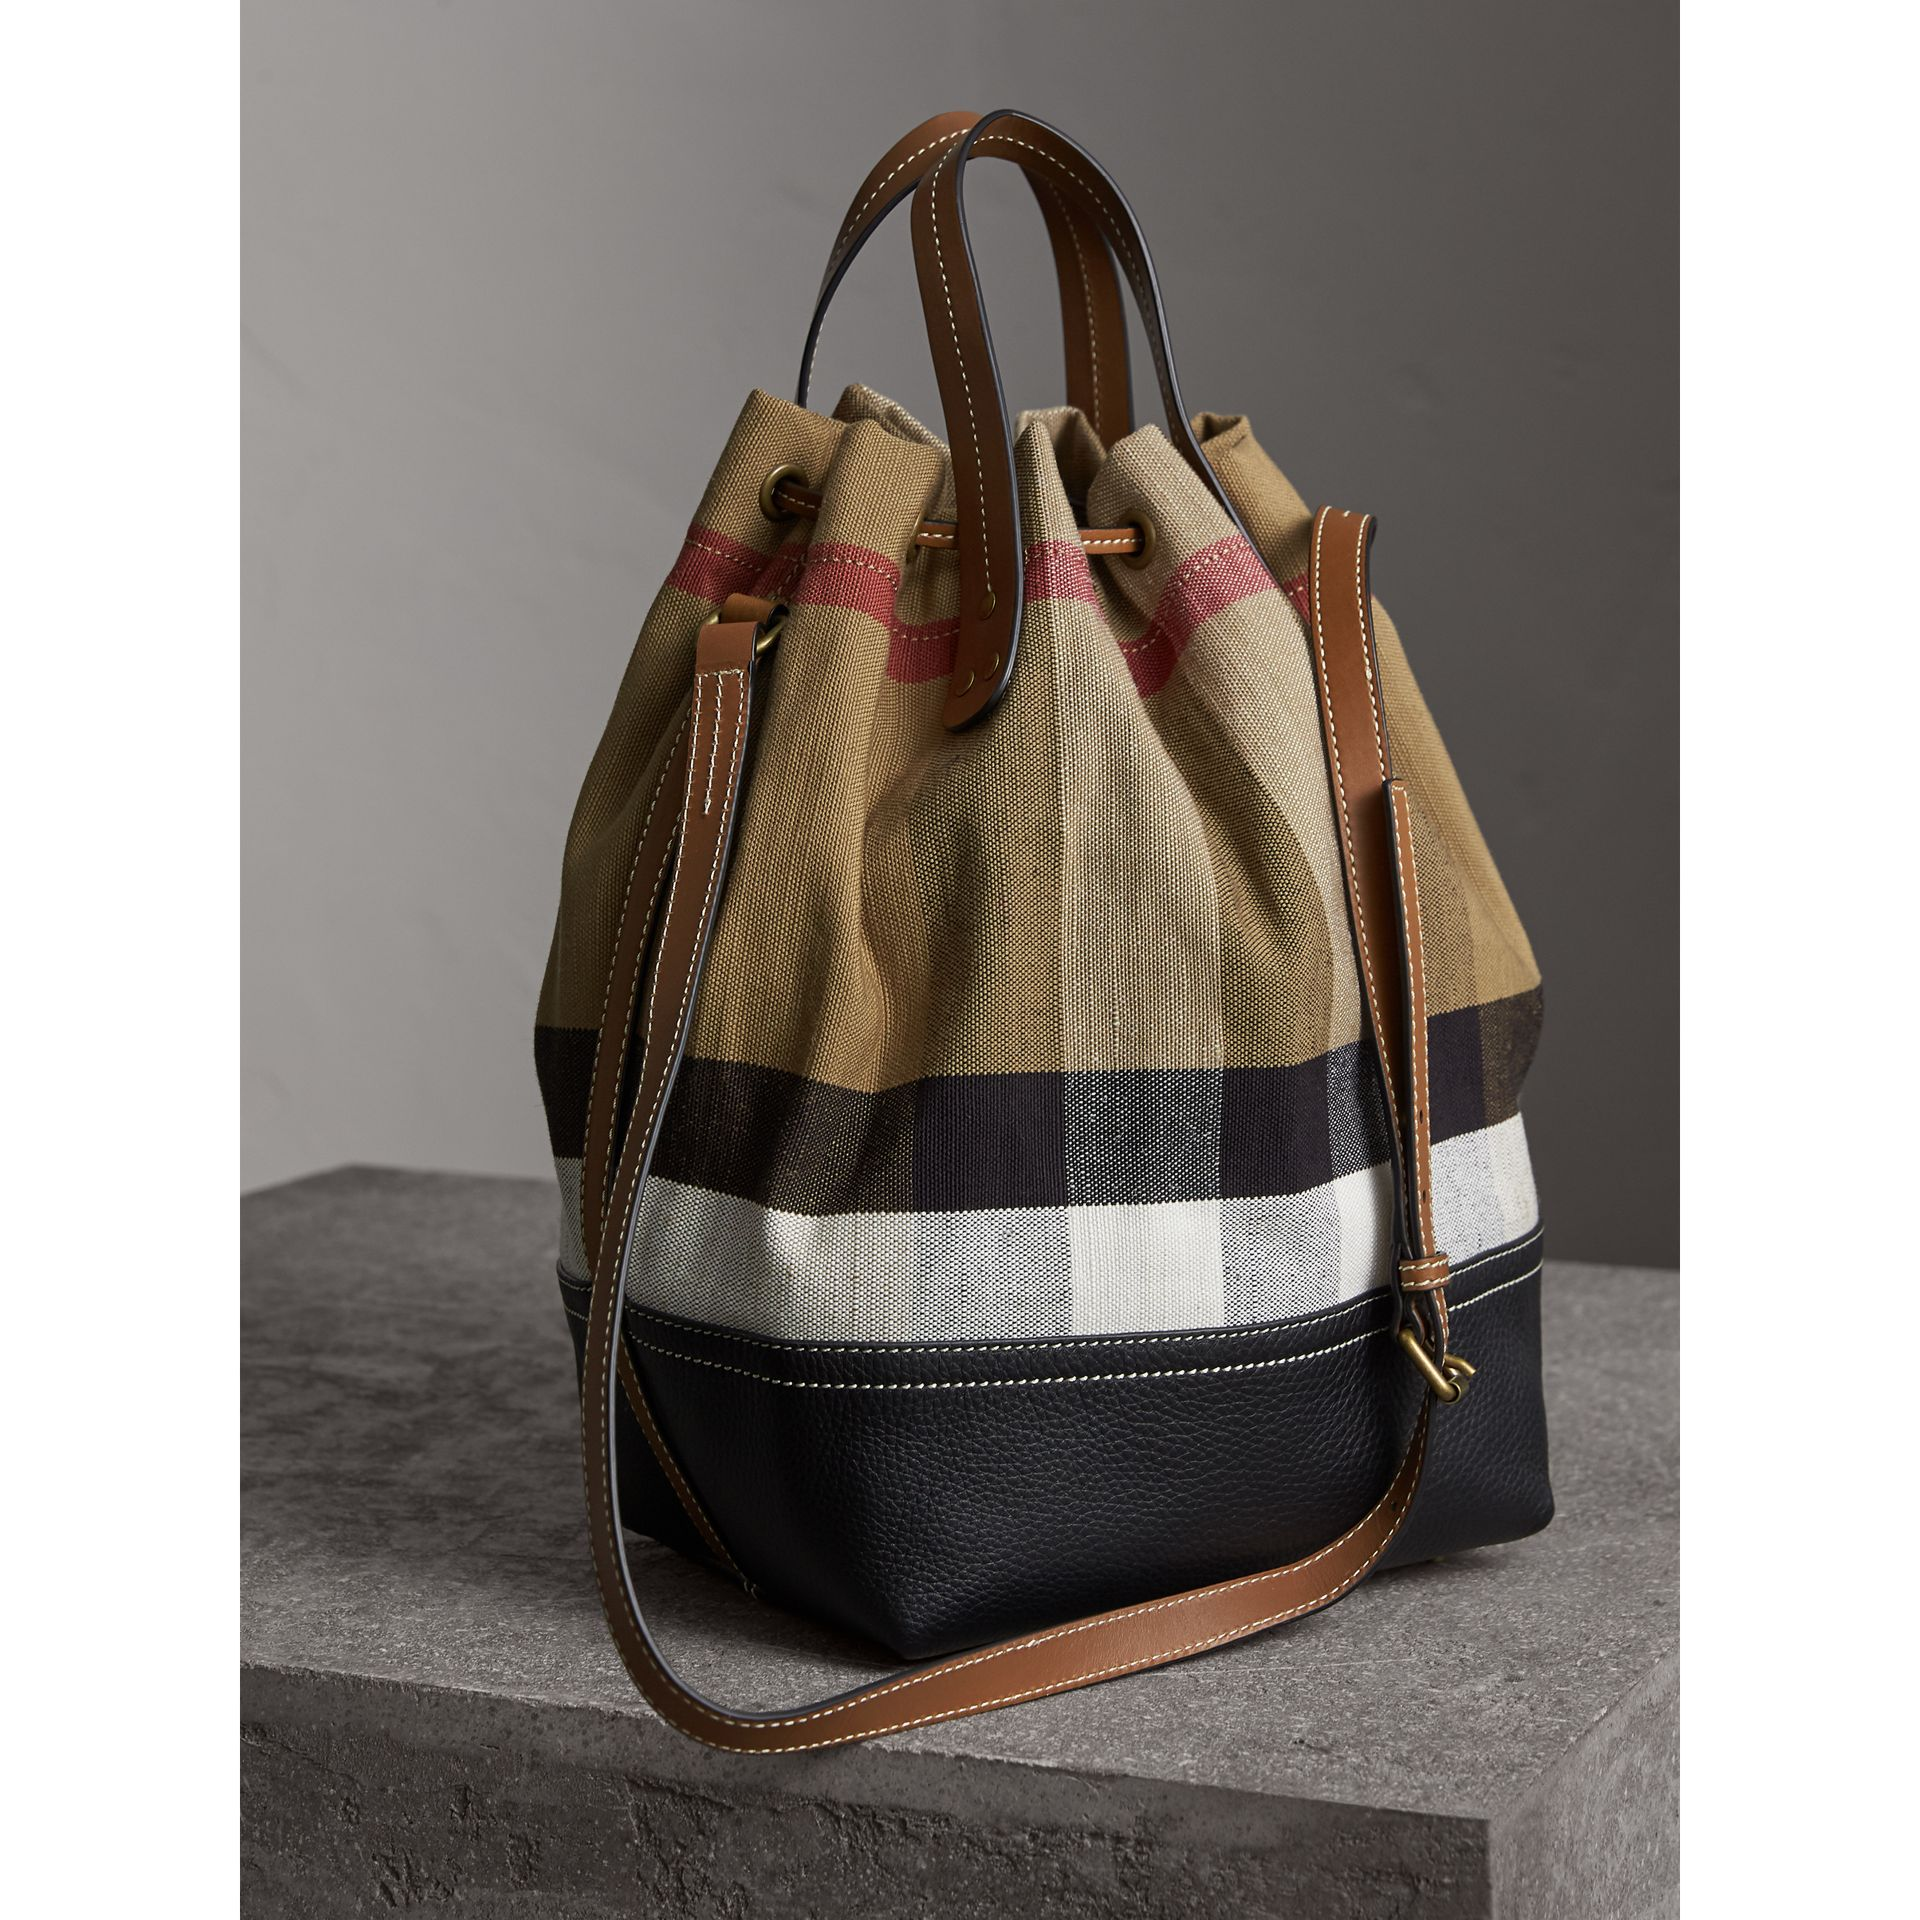 Medium Canvas Check Bucket Bag in Tan - Women | Burberry Hong Kong - gallery image 4